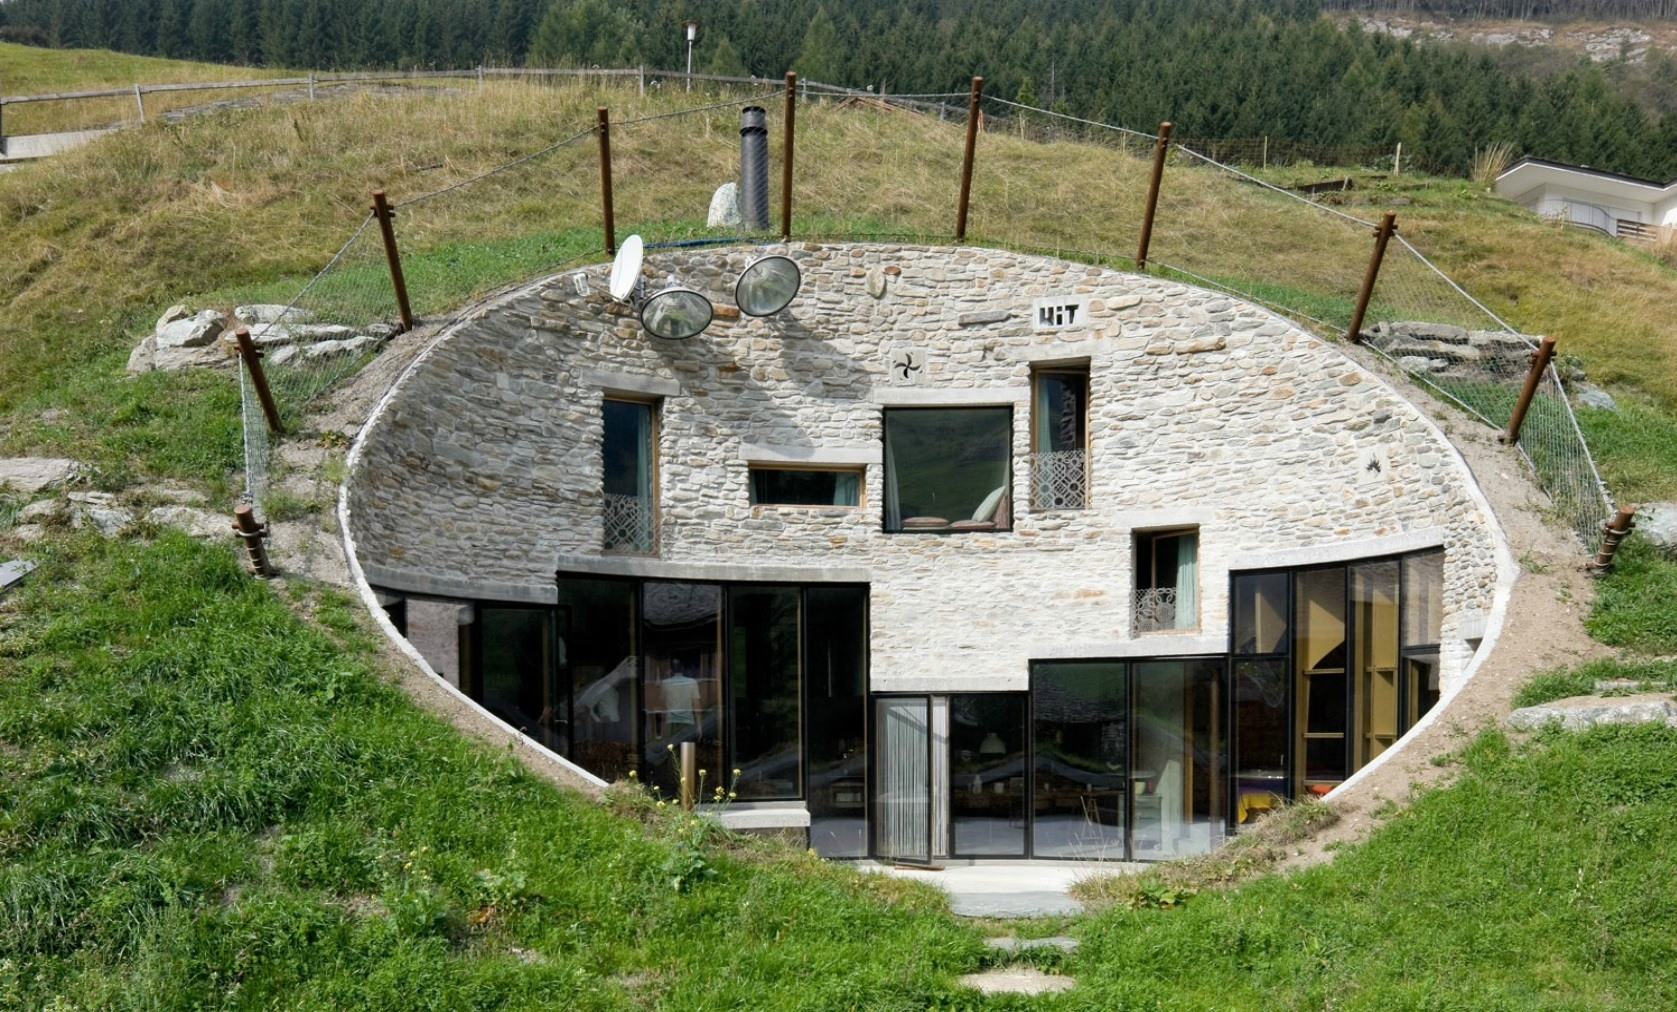 http://www.hgnv.com/wp-content/uploads/2017/01/Villa-Vals-by-studio-SeARCH-Christian-Muller-Architect.jpg